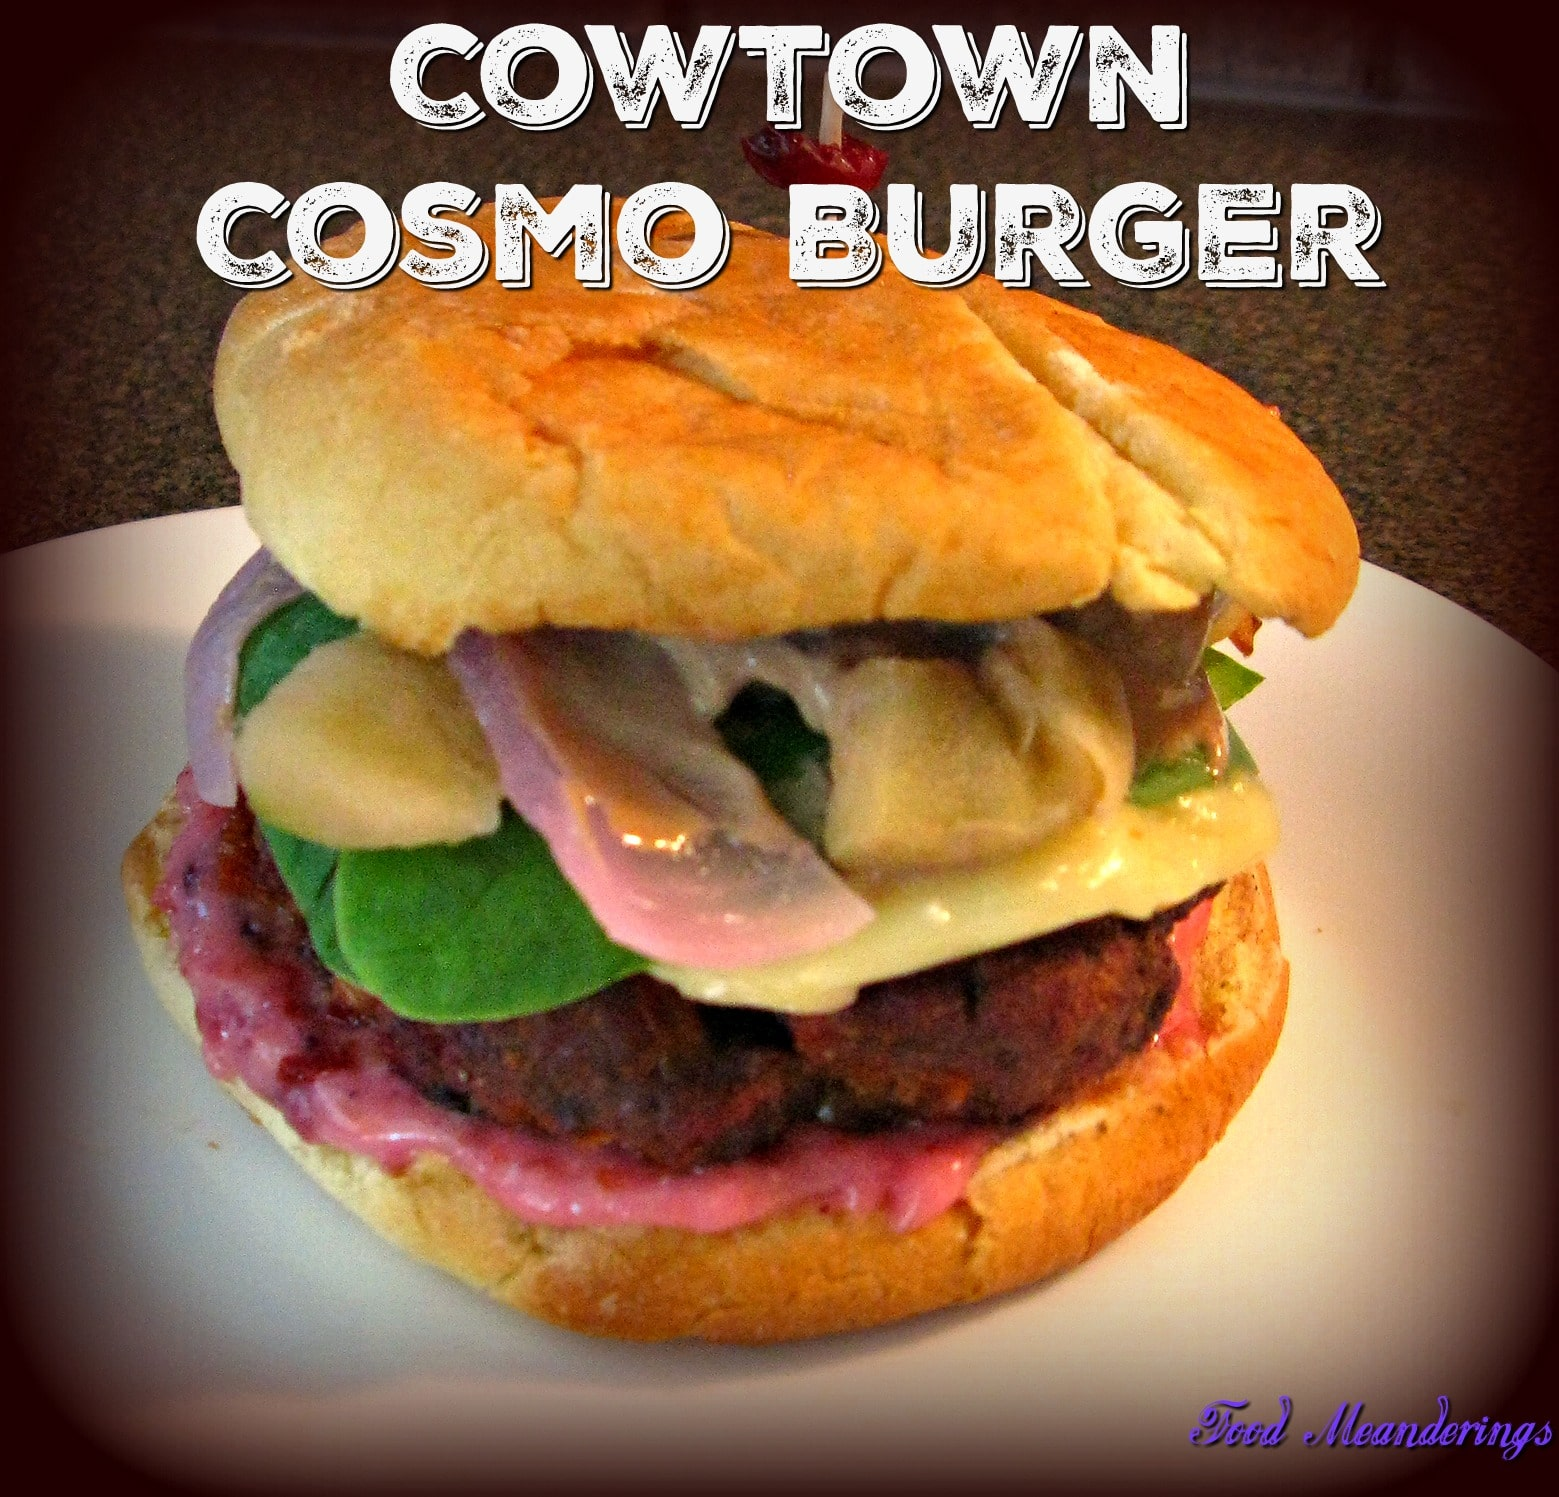 Cowtown Cosmo burger.jpg